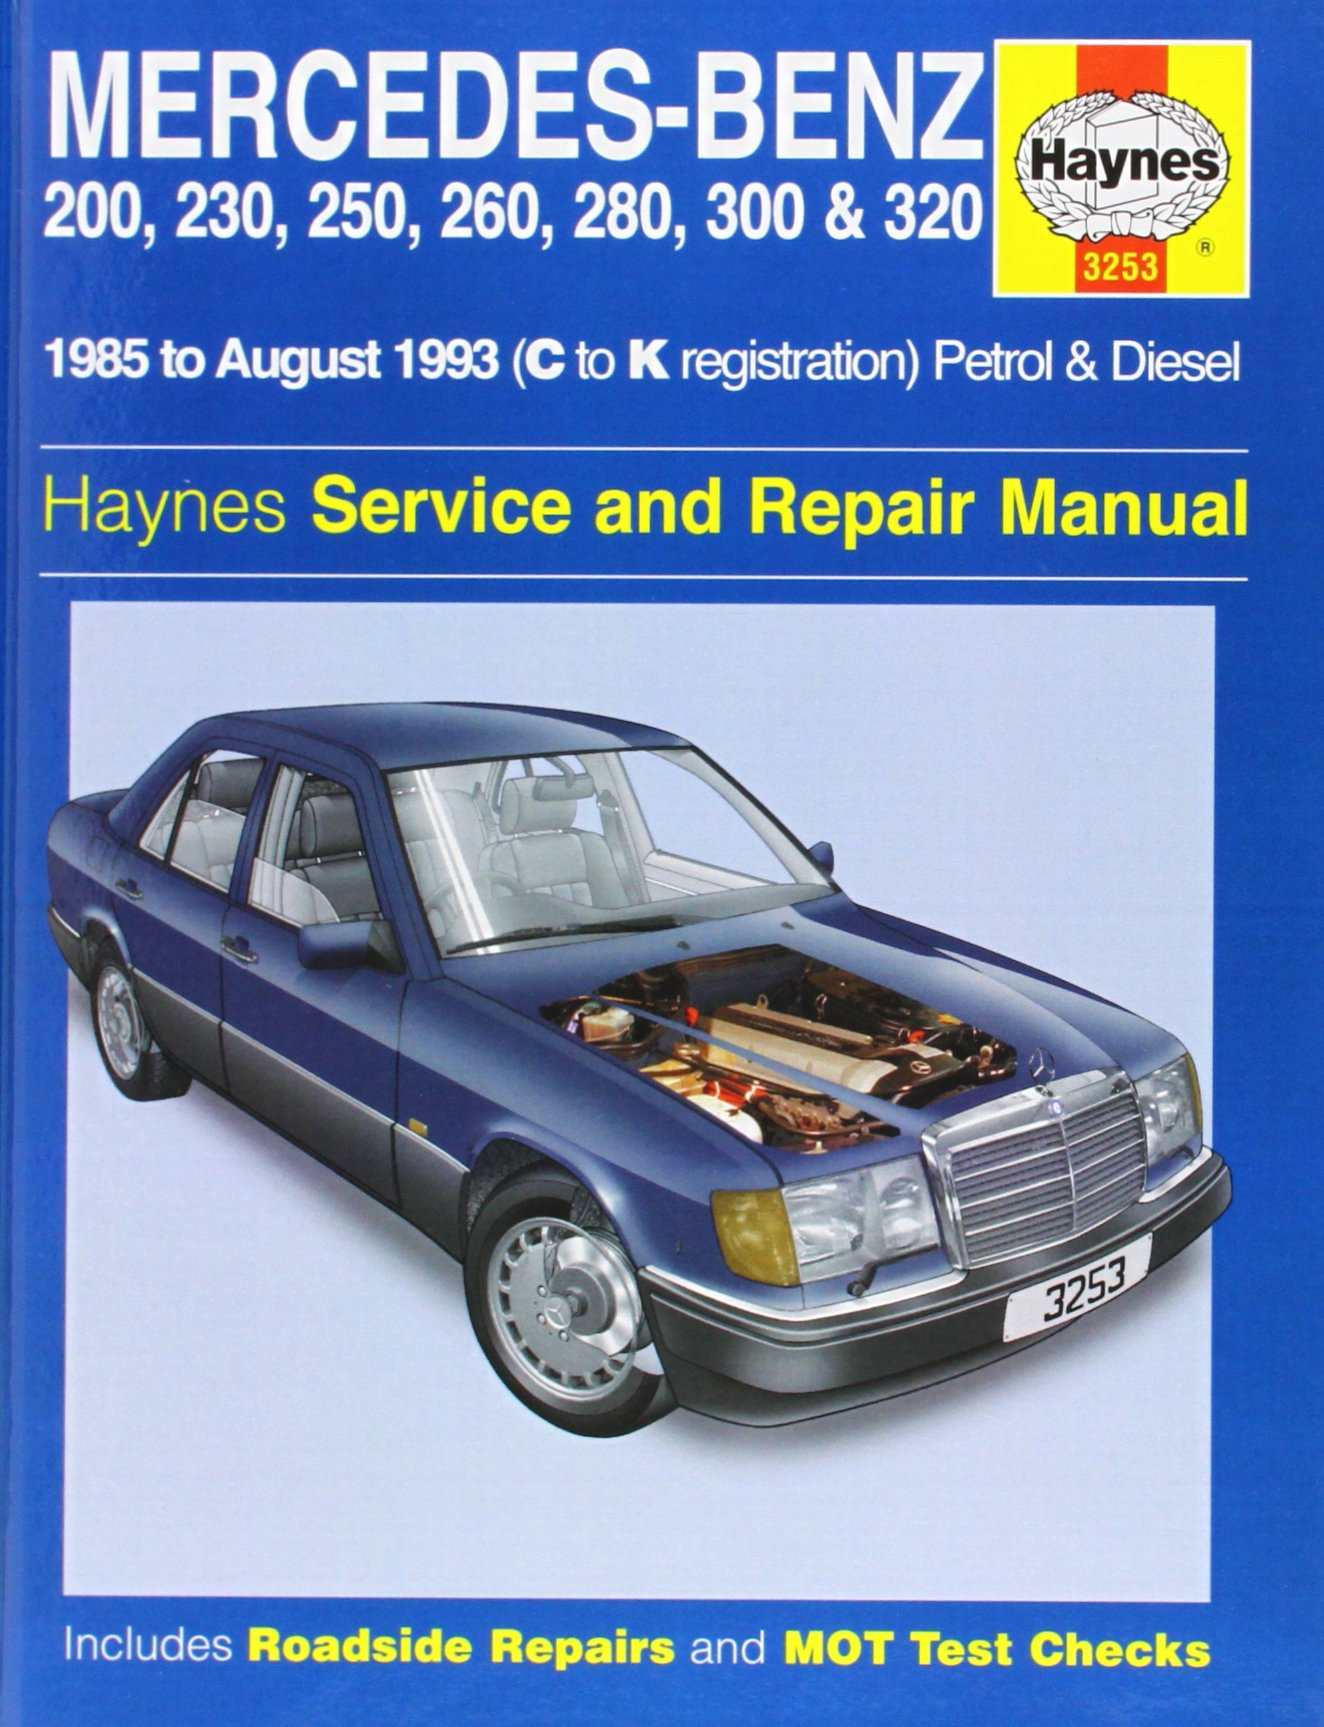 mercedes benz 124 series 85 93 service and repair manual haynes rh amazon  com 1996 Mercedes E320 Transmission 1996 mercedes benz e320 repair manual